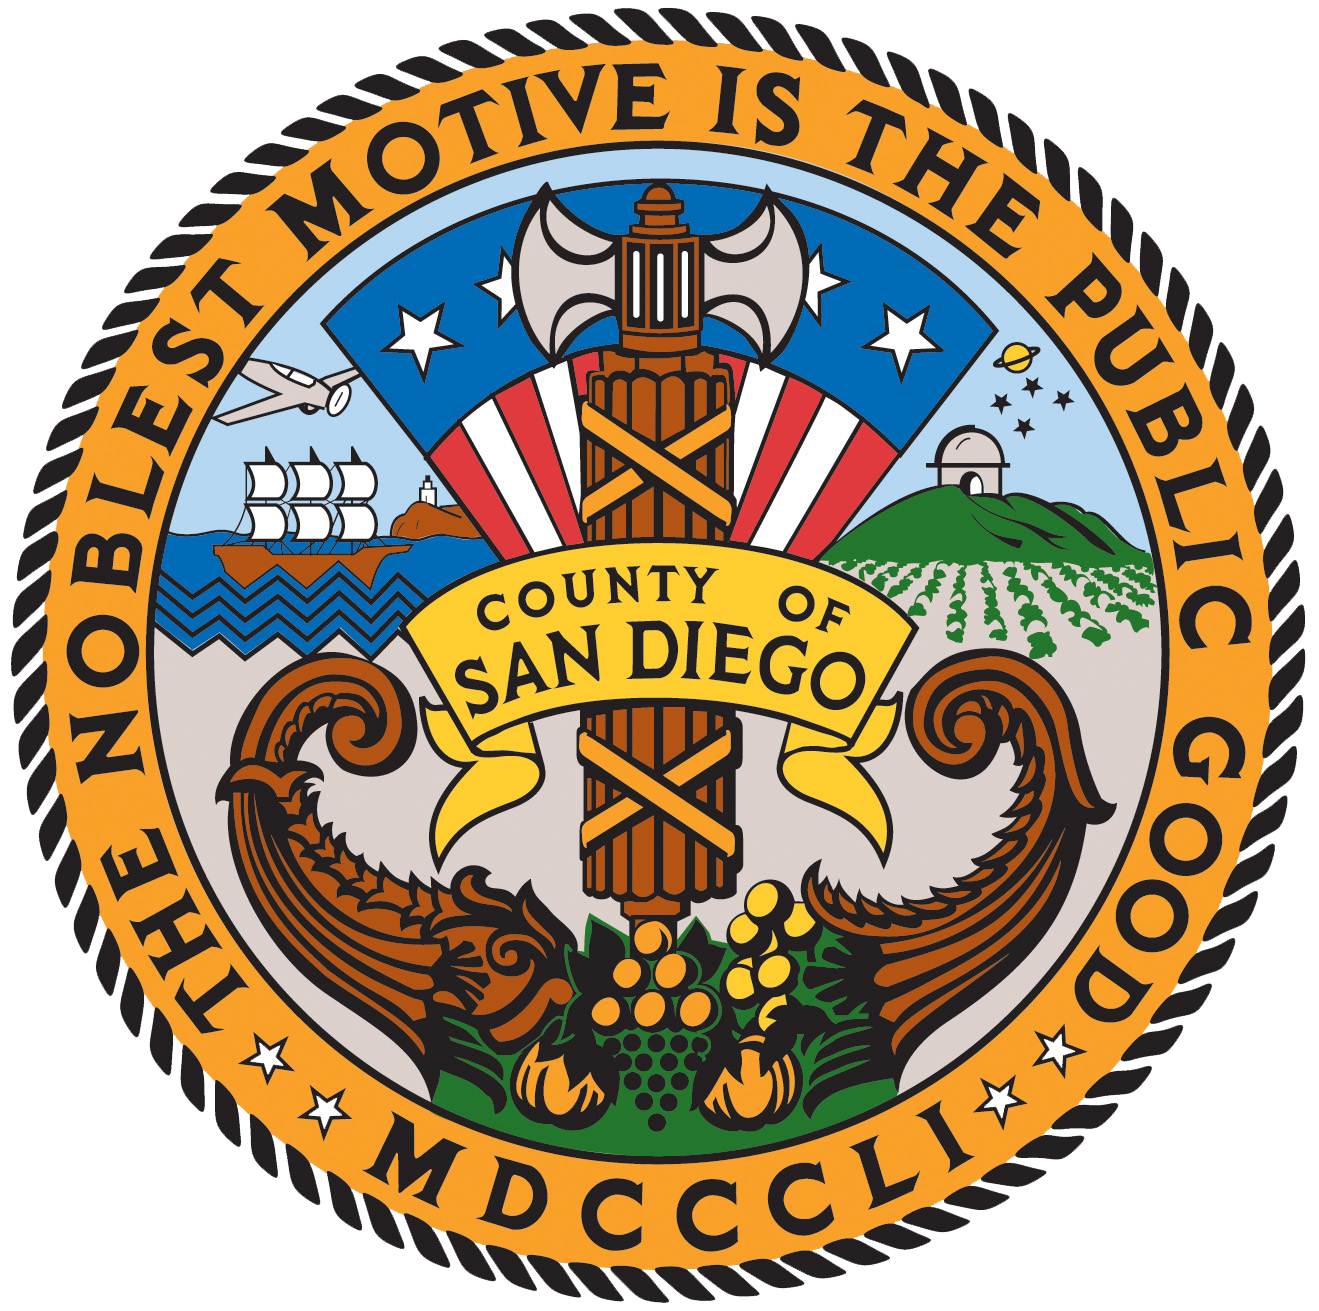 The County of San Diego